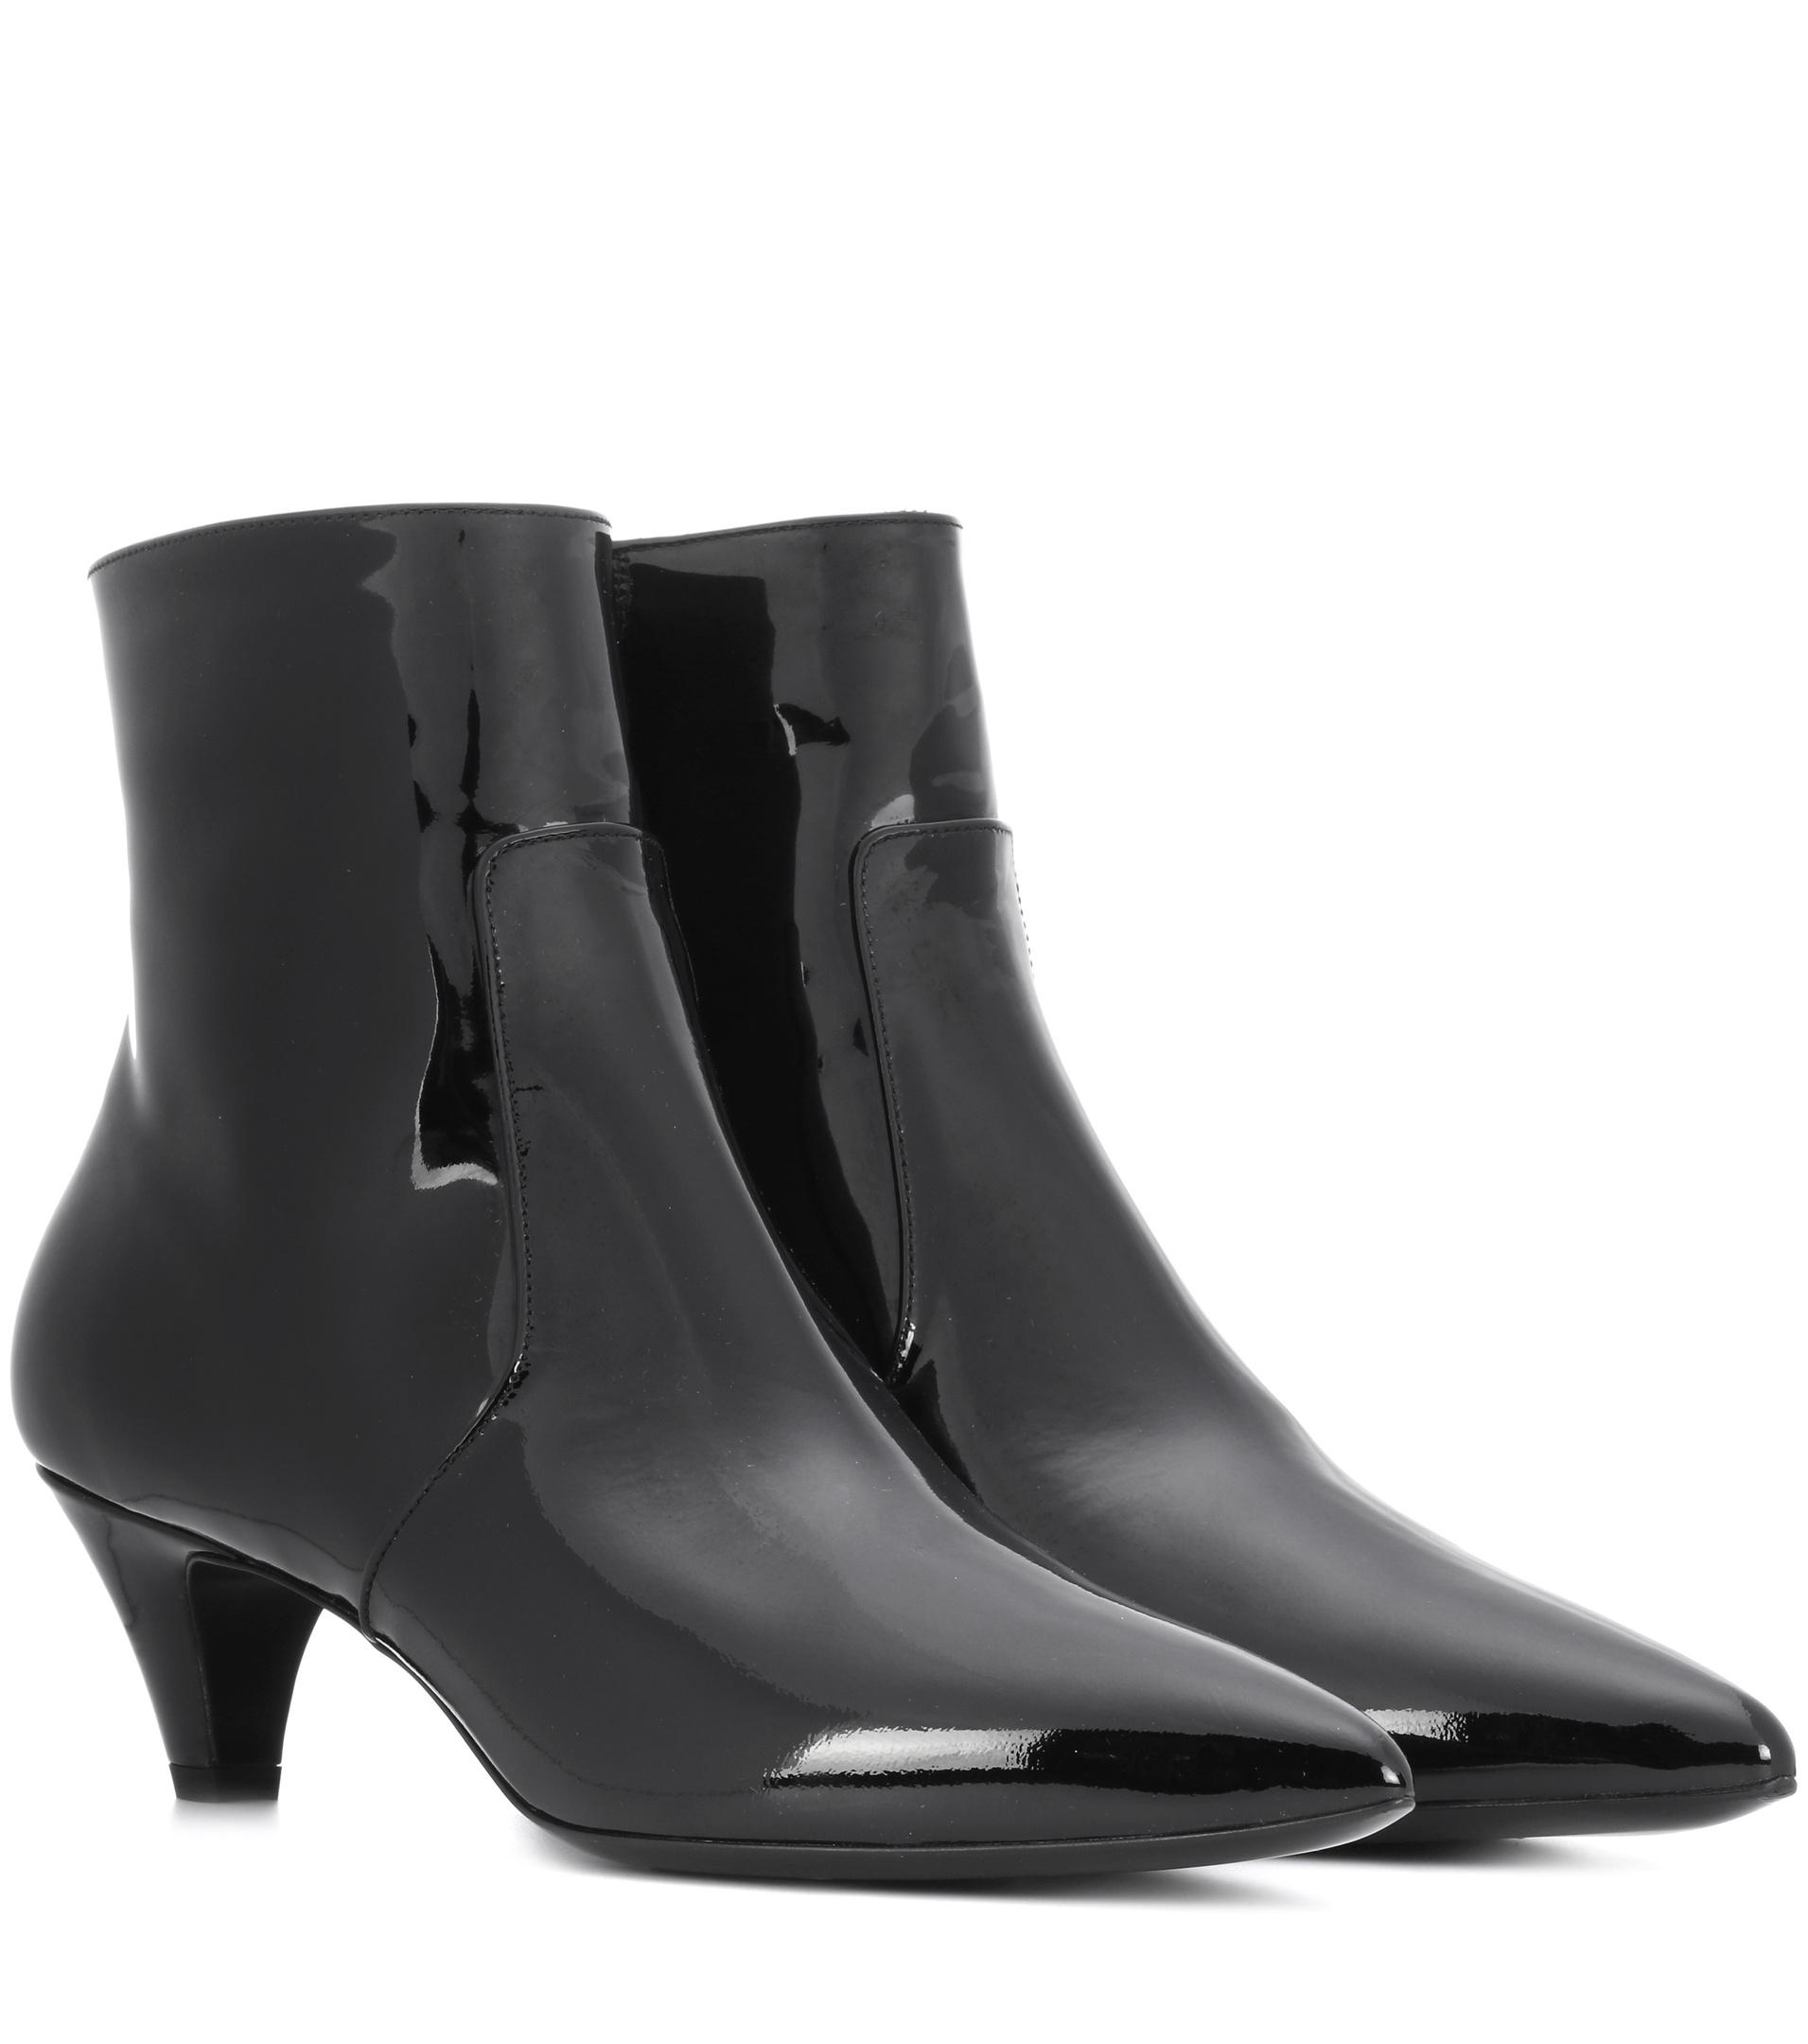 262841718393 Lyst - CALVIN KLEIN 205W39NYC Kat Patent Leather Ankle Boots in Black